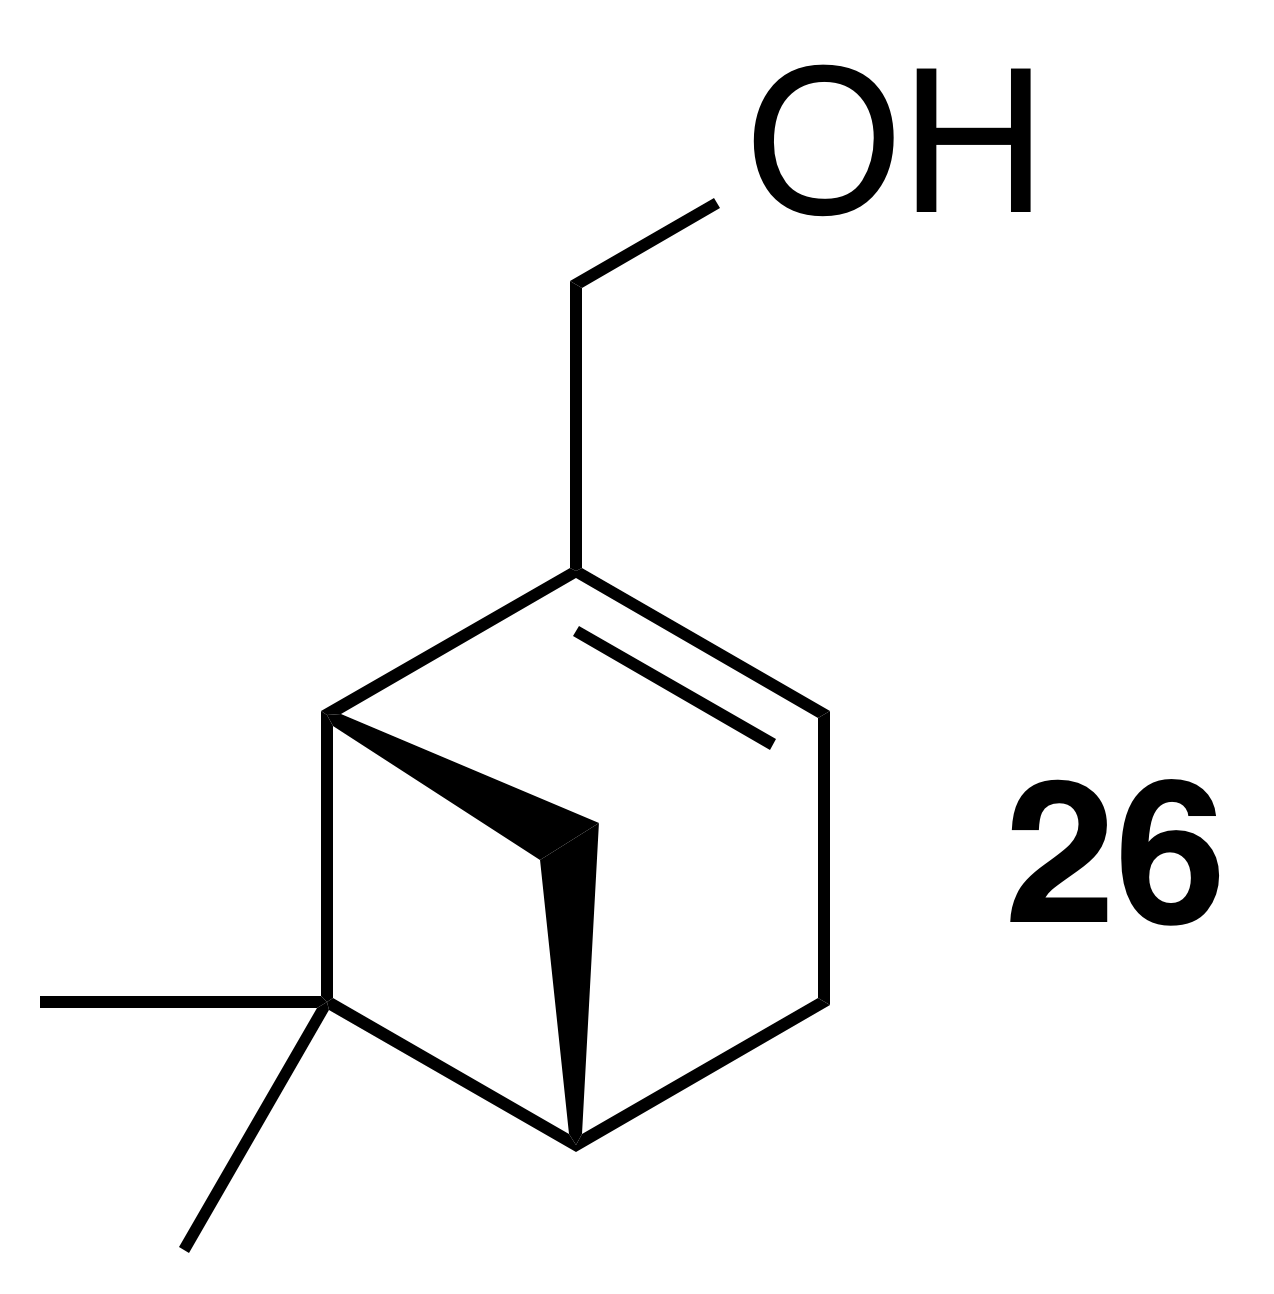 https://www.atmos-chem-phys.net/20/4241/2020/acp-20-4241-2020-g22